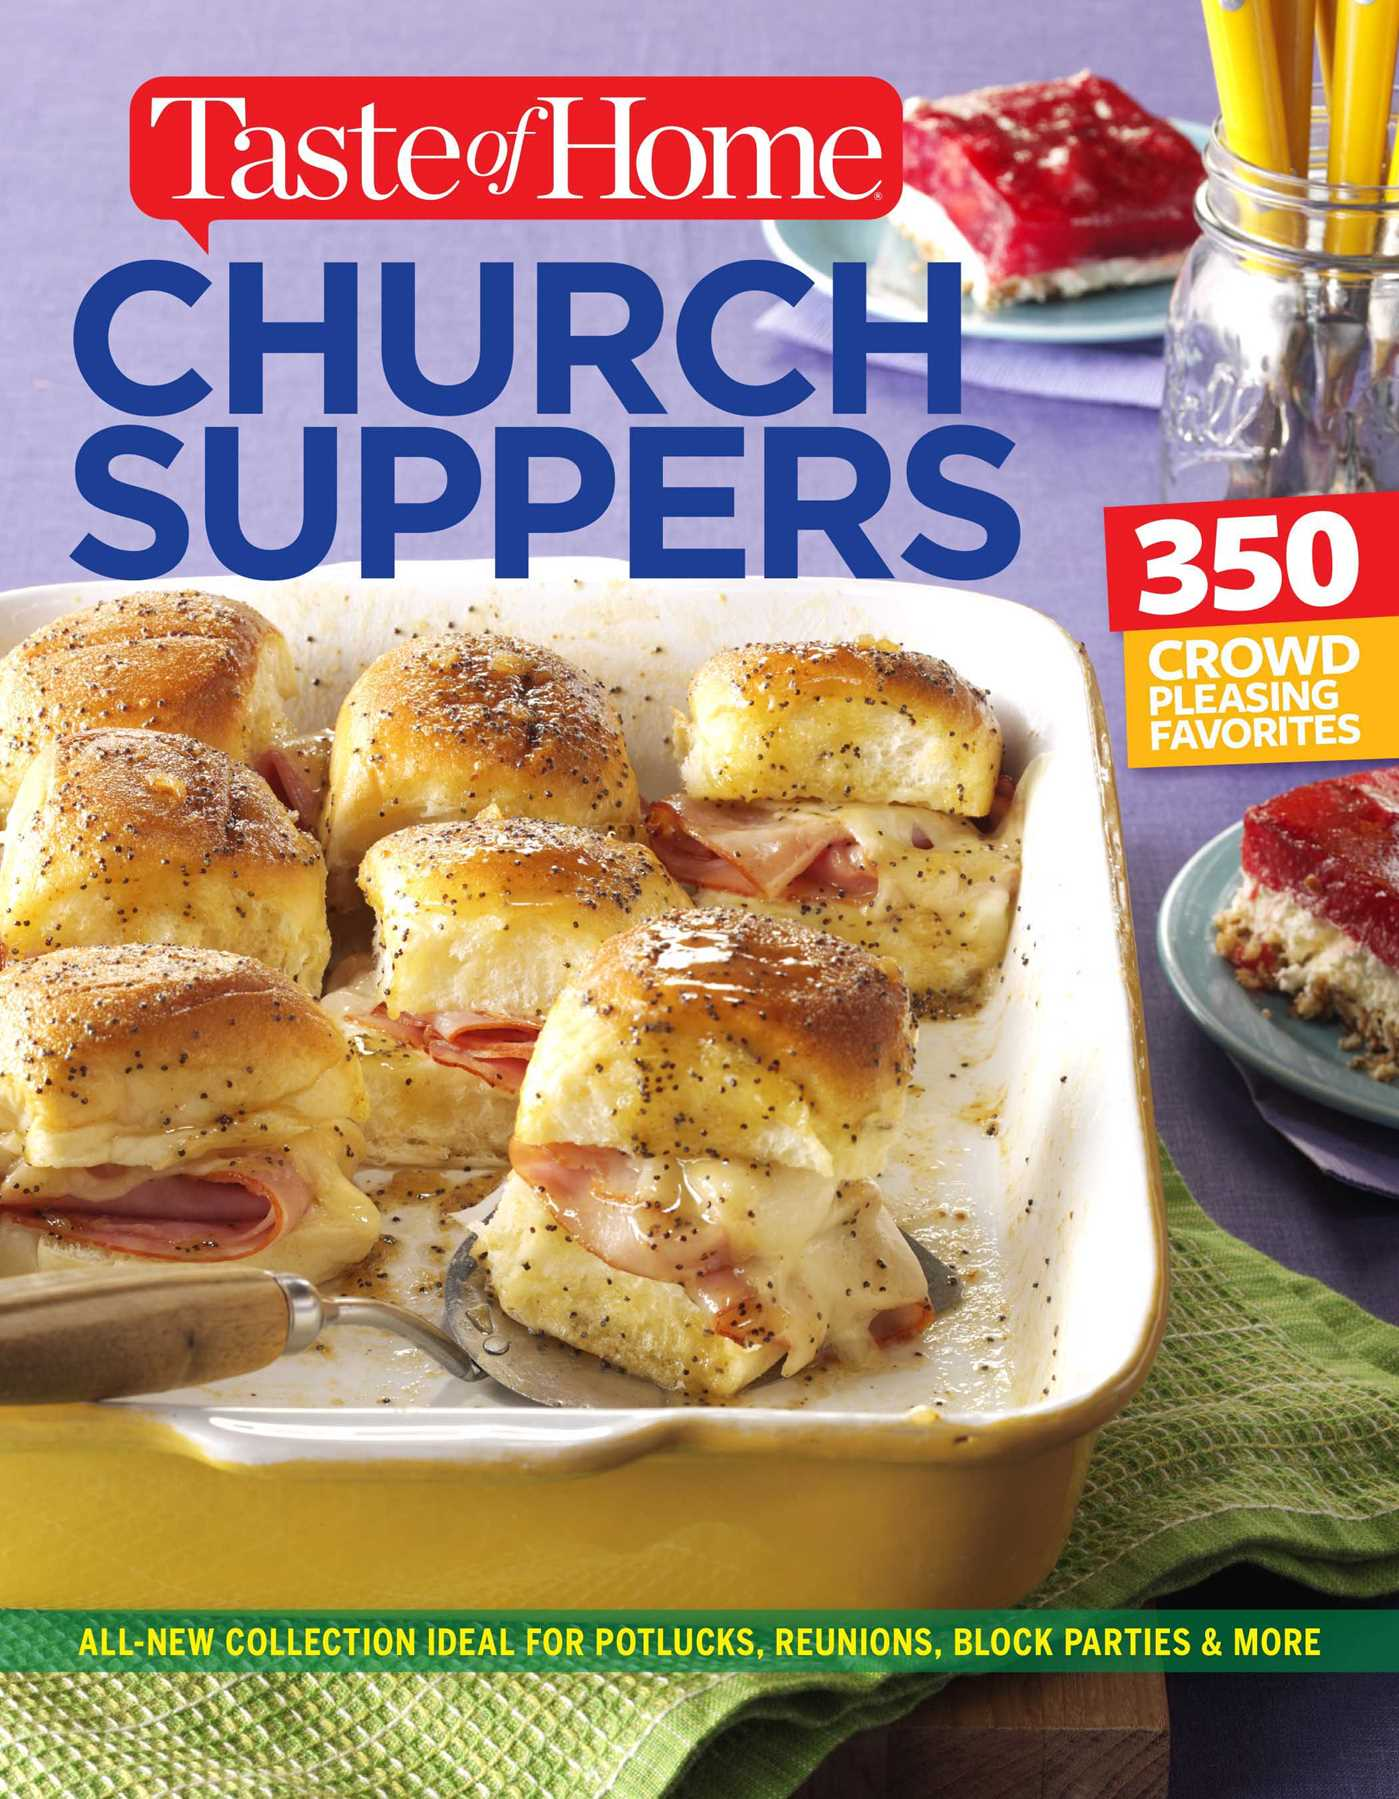 Taste of home church supper cookbook new edition 9781617656521 hr